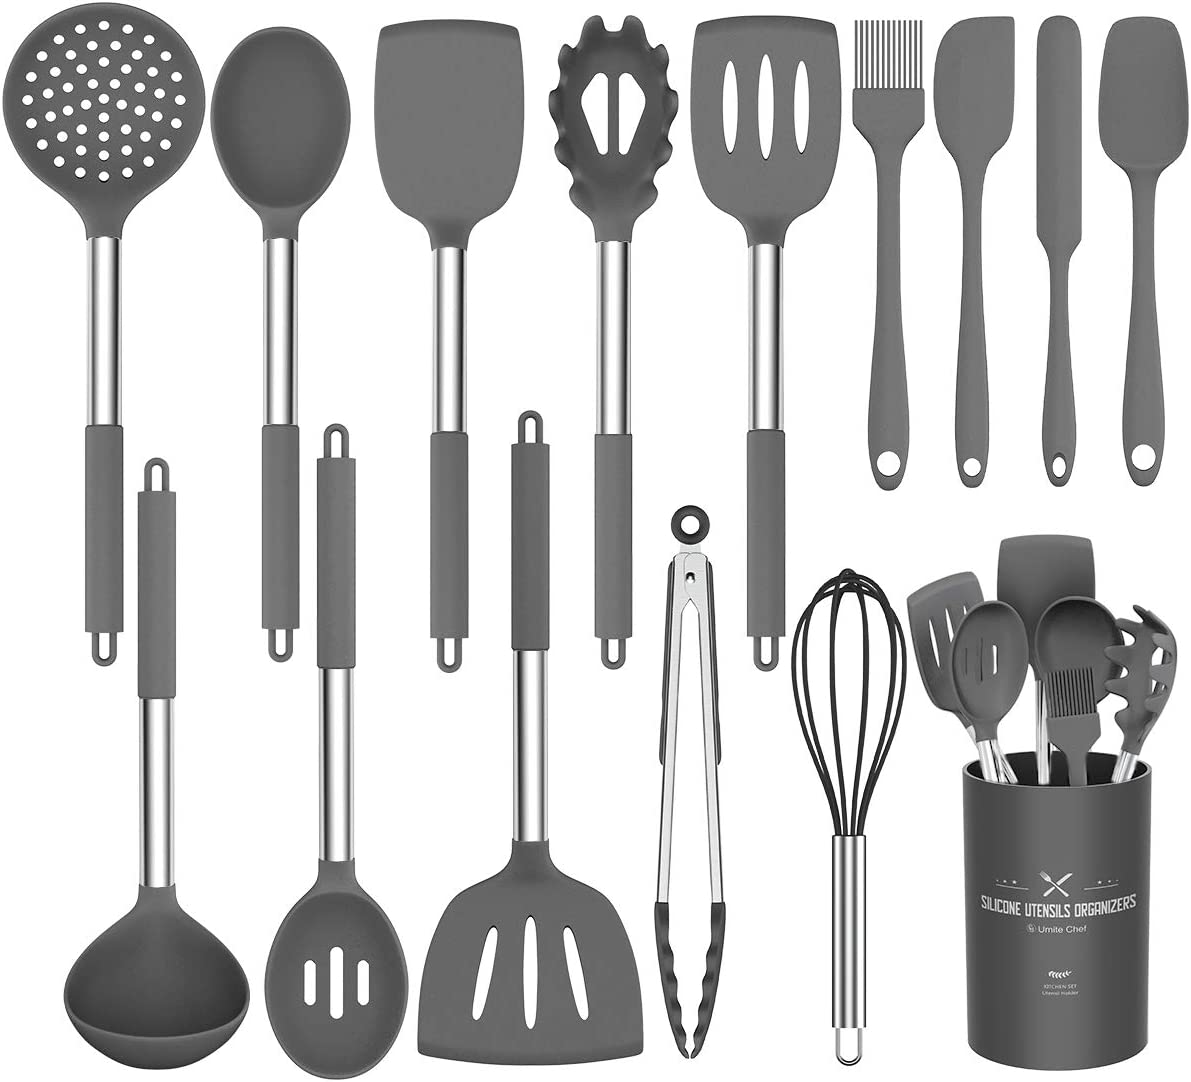 Silicone Cooking Utensil Set, Umite Chef Kitchen Utensils 15pcs Cooking Utensils Set Non-stick Heat Resistant BPA-Free